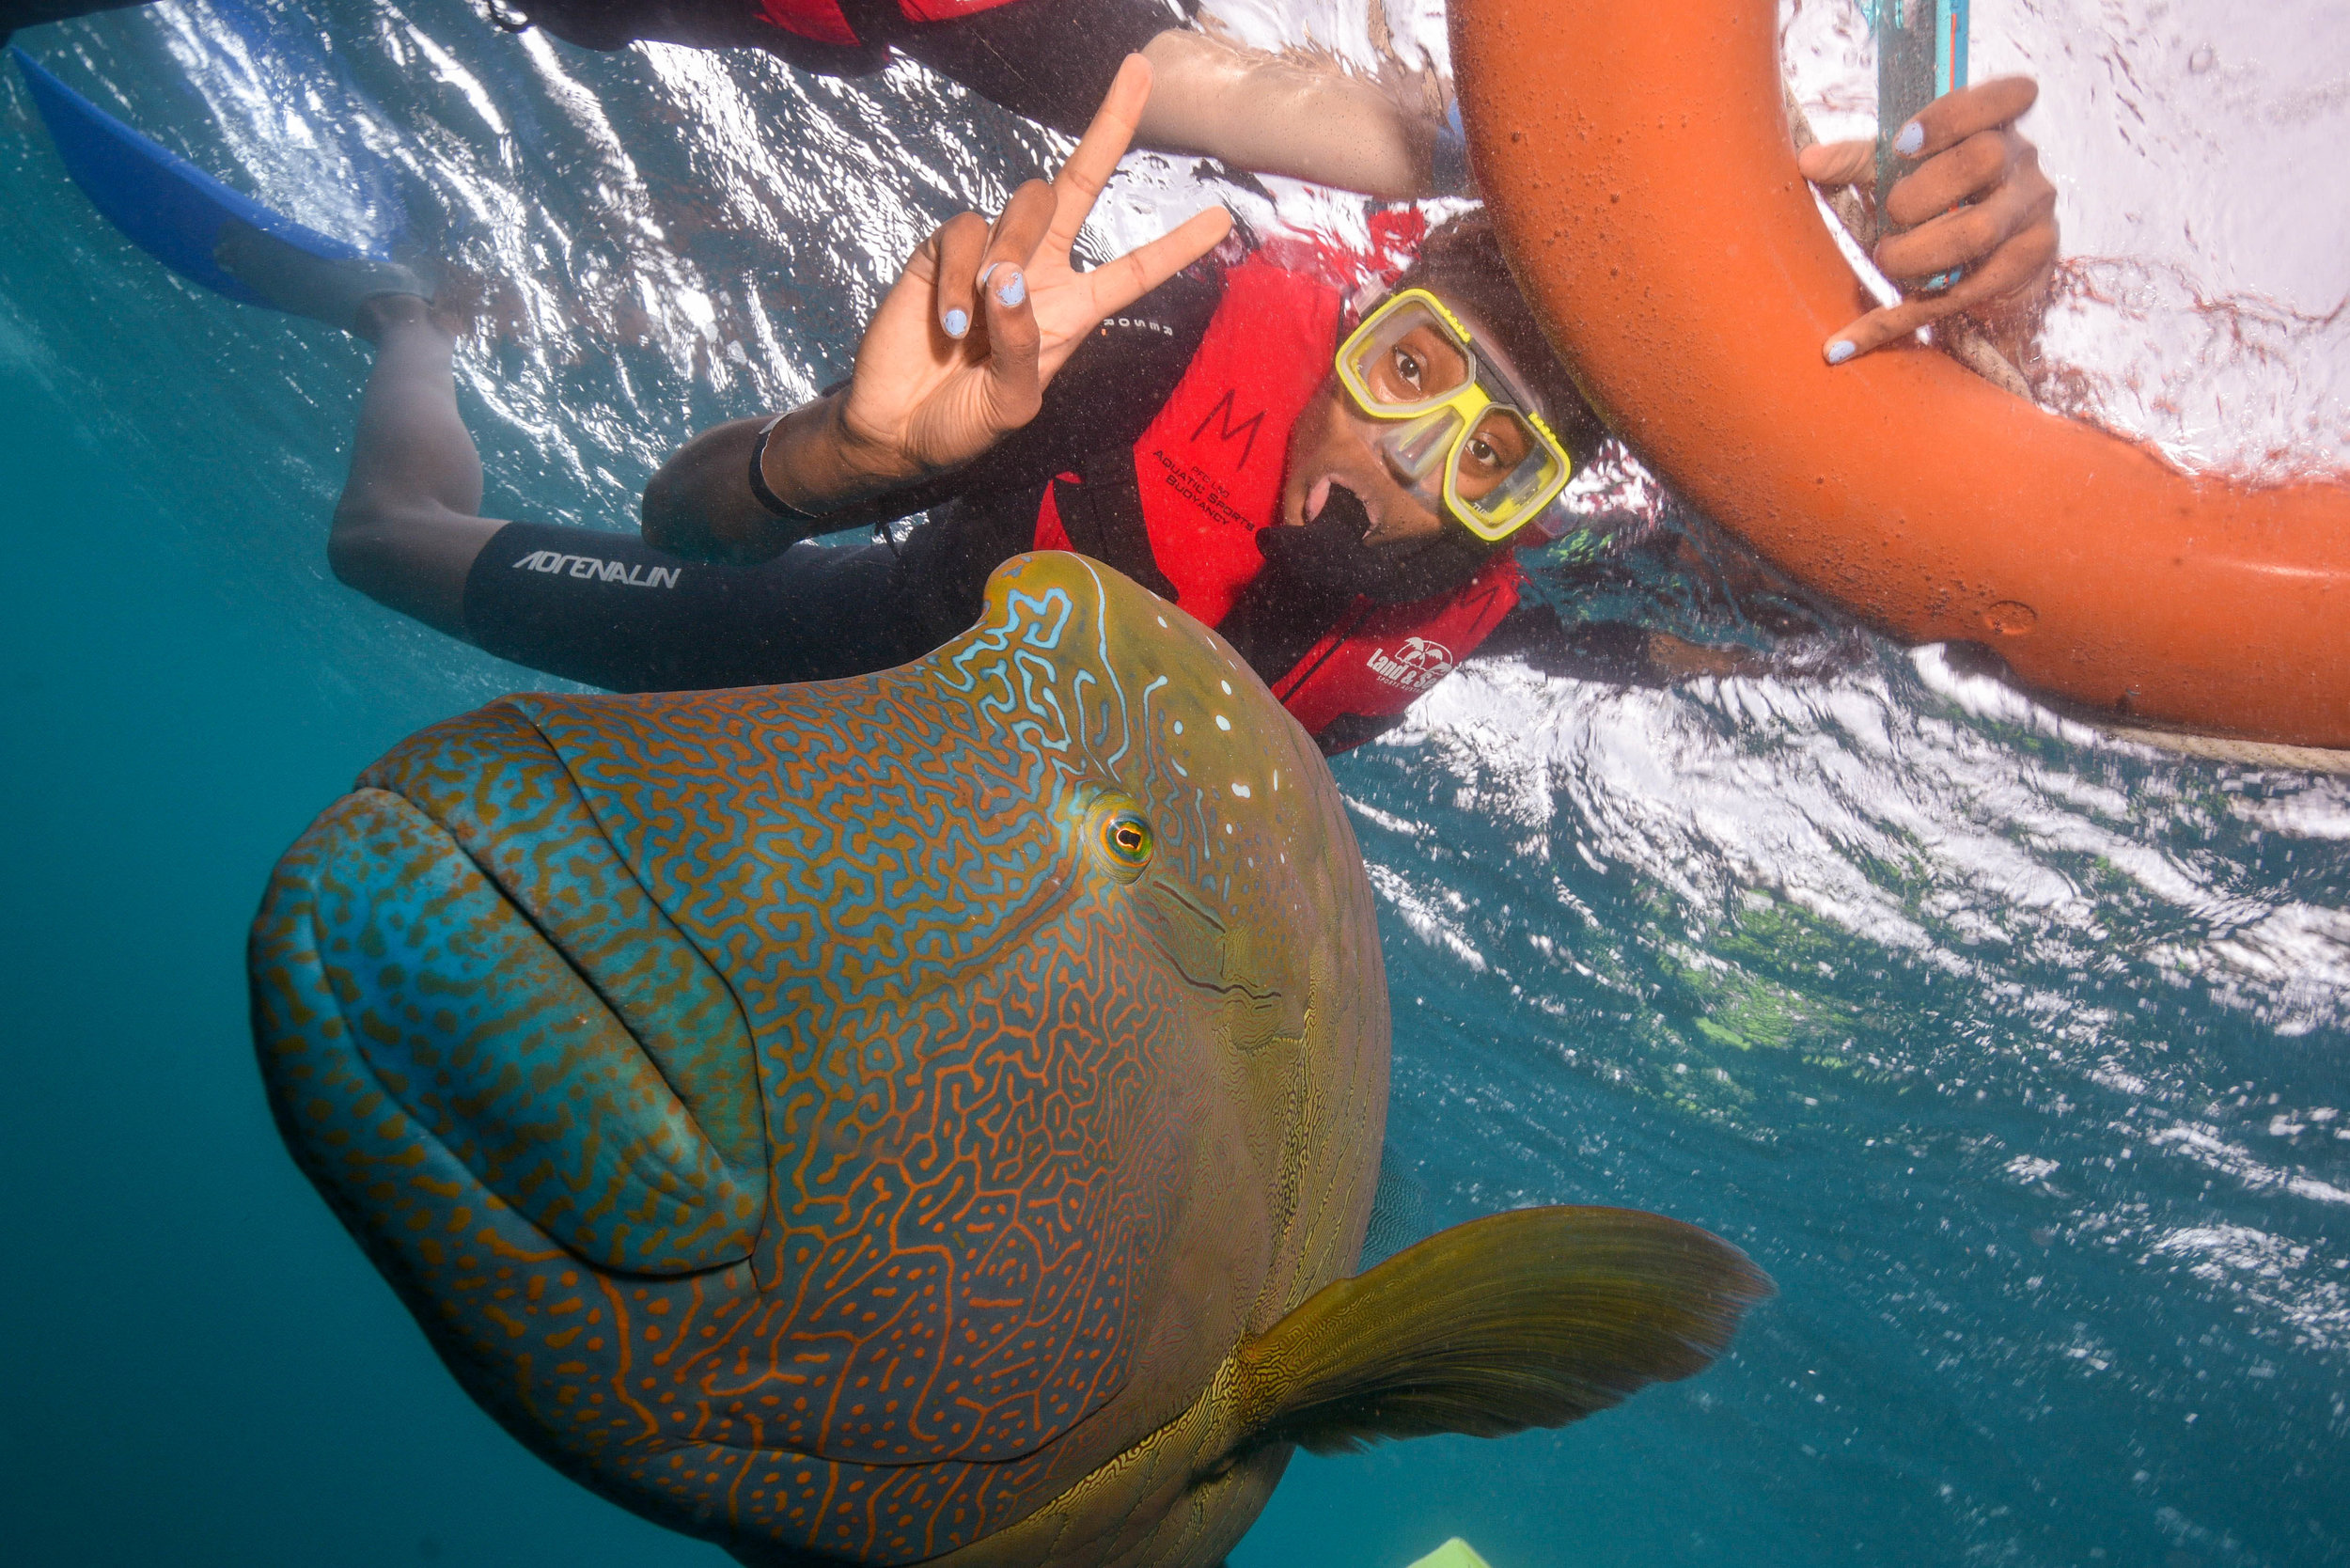 Biggest fish I have ever swam with!!